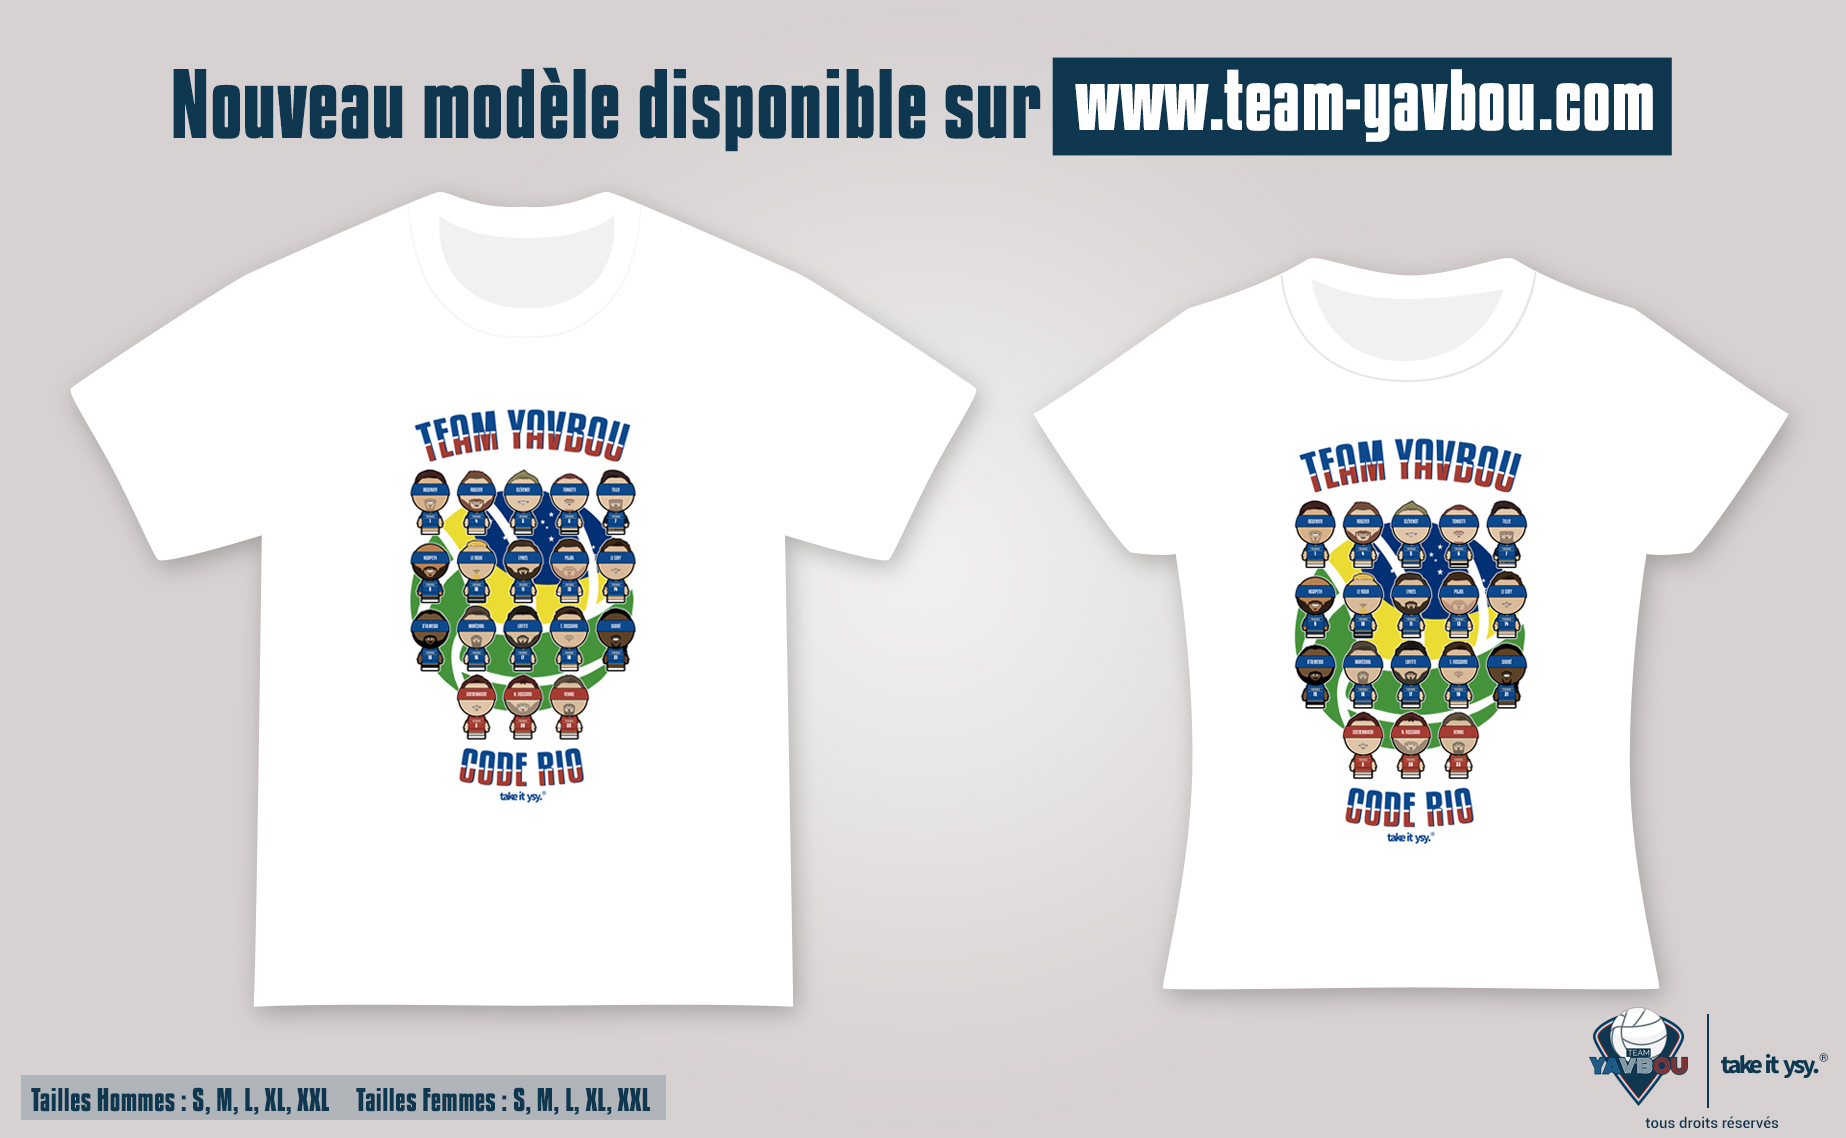 YAVBOU - Visuel T-SHIRTS Homme et Femme YSY RIO 2016 Take it YSY 2016 Youssef t-shirt Team Yavbou - Go with the Blog